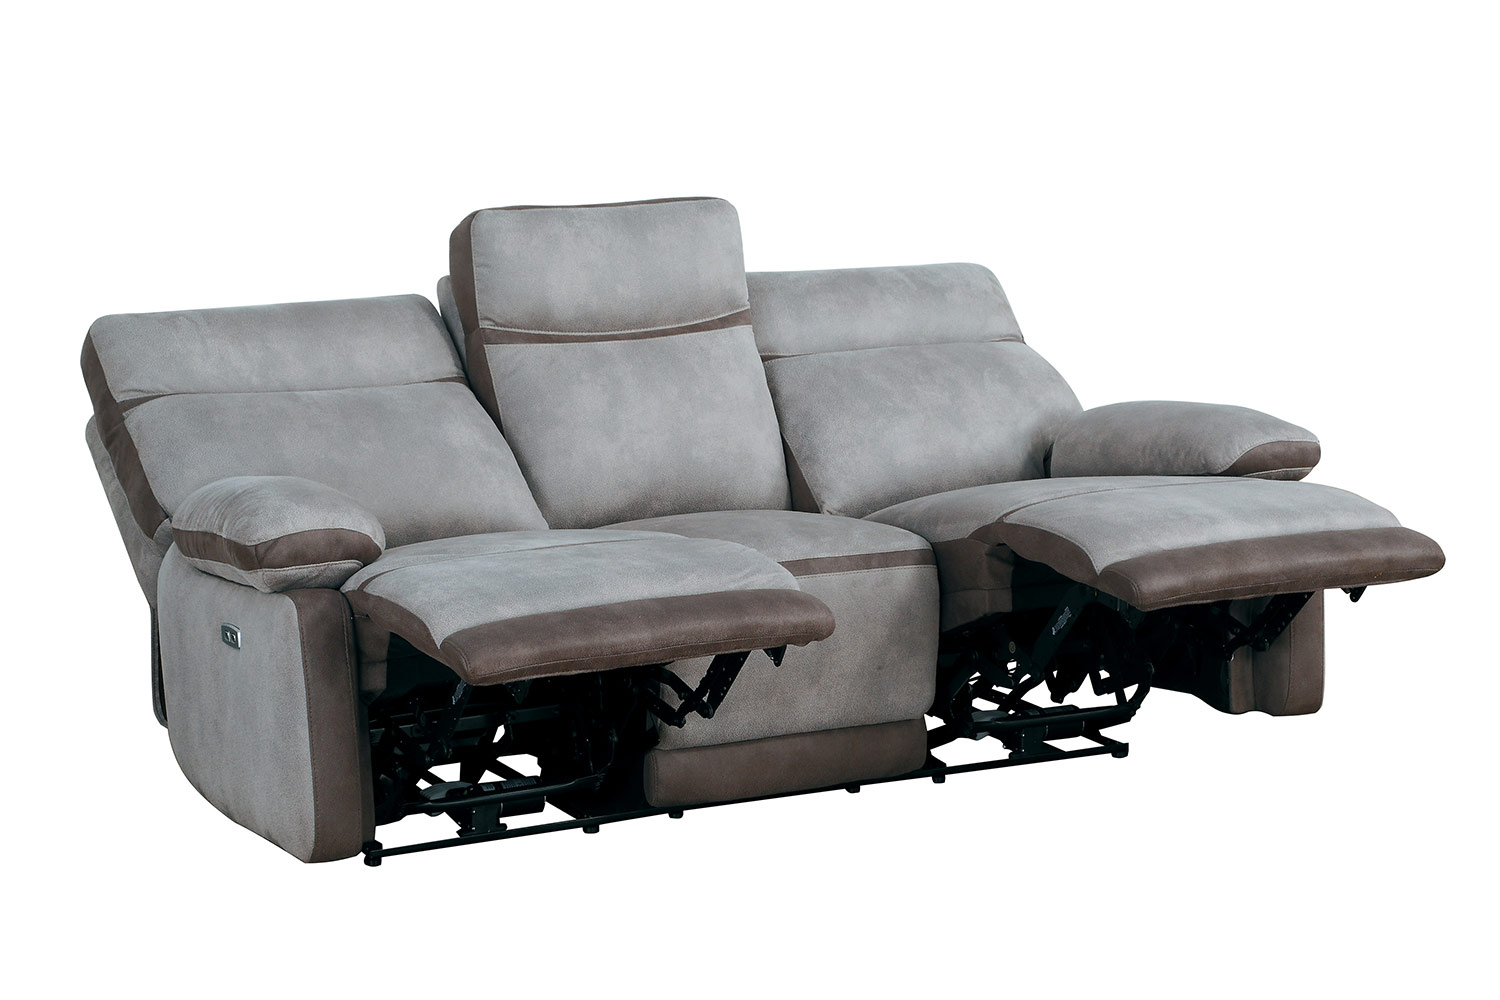 Homelegance Barilotto Power Double Reclining Sofa With Power Headrests - Gray